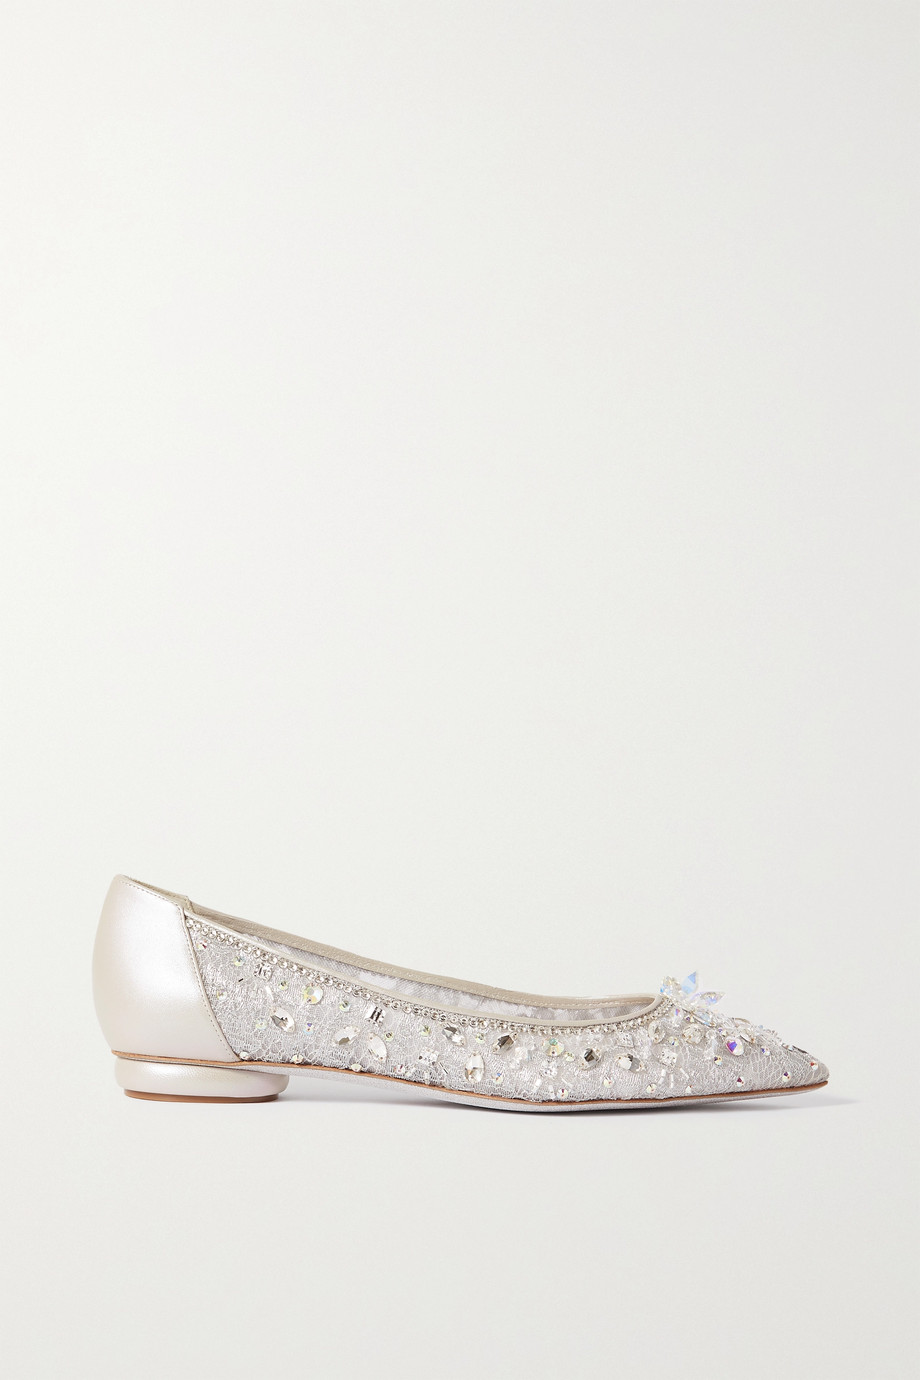 RENÉ CAOVILLA Crystal-embellished leather-trimmed lace point-toe flats